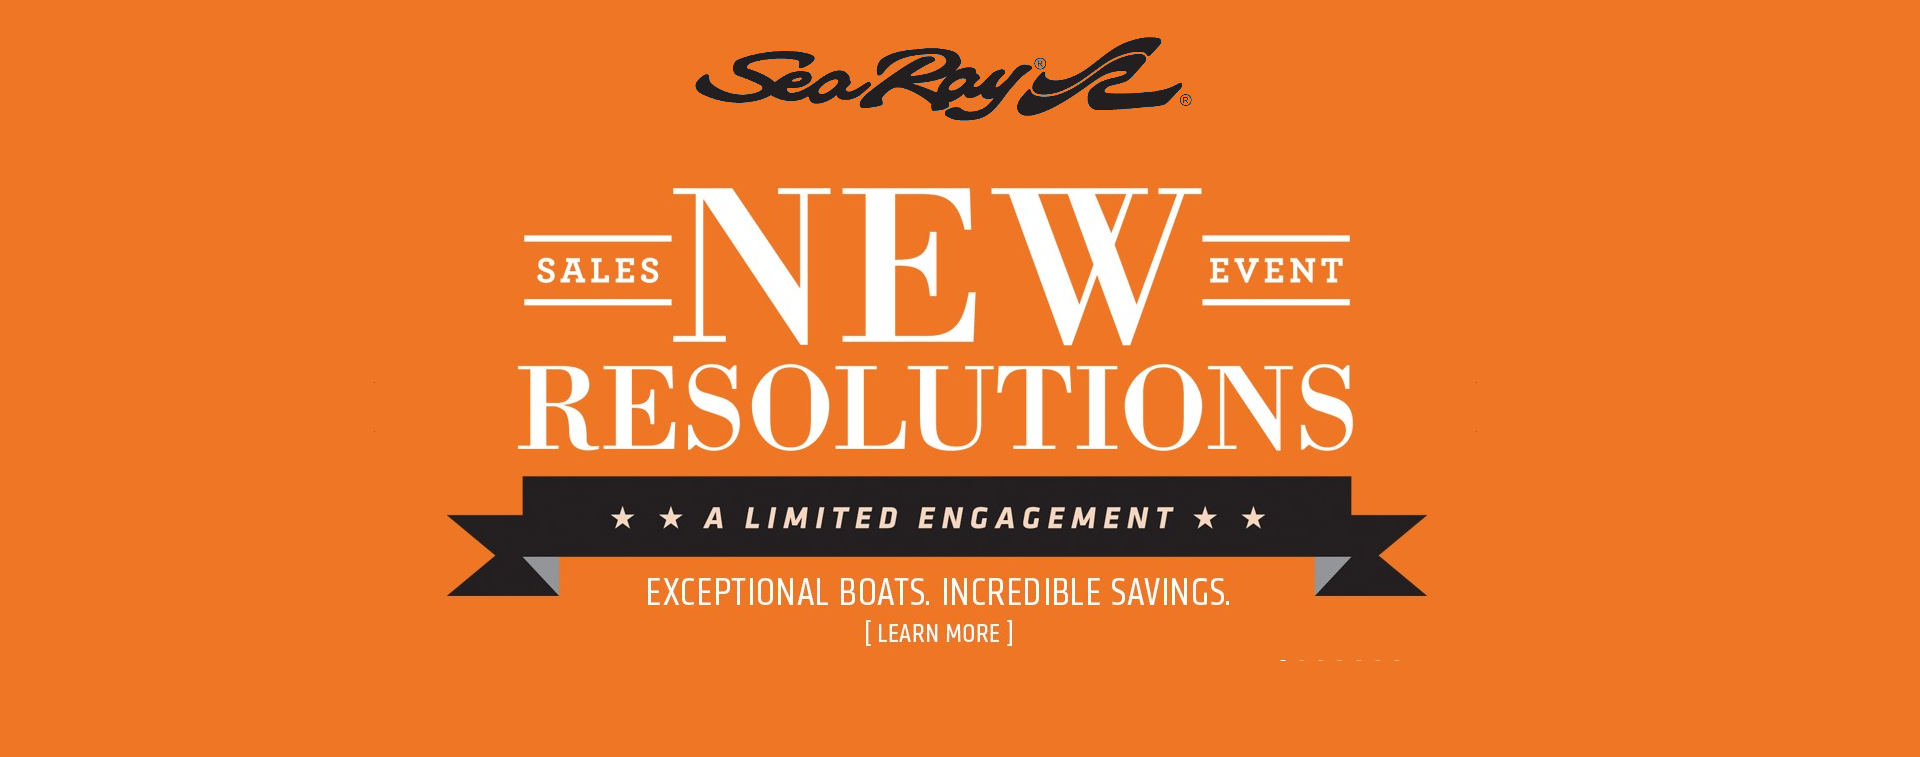 New Resolutions Sales Event